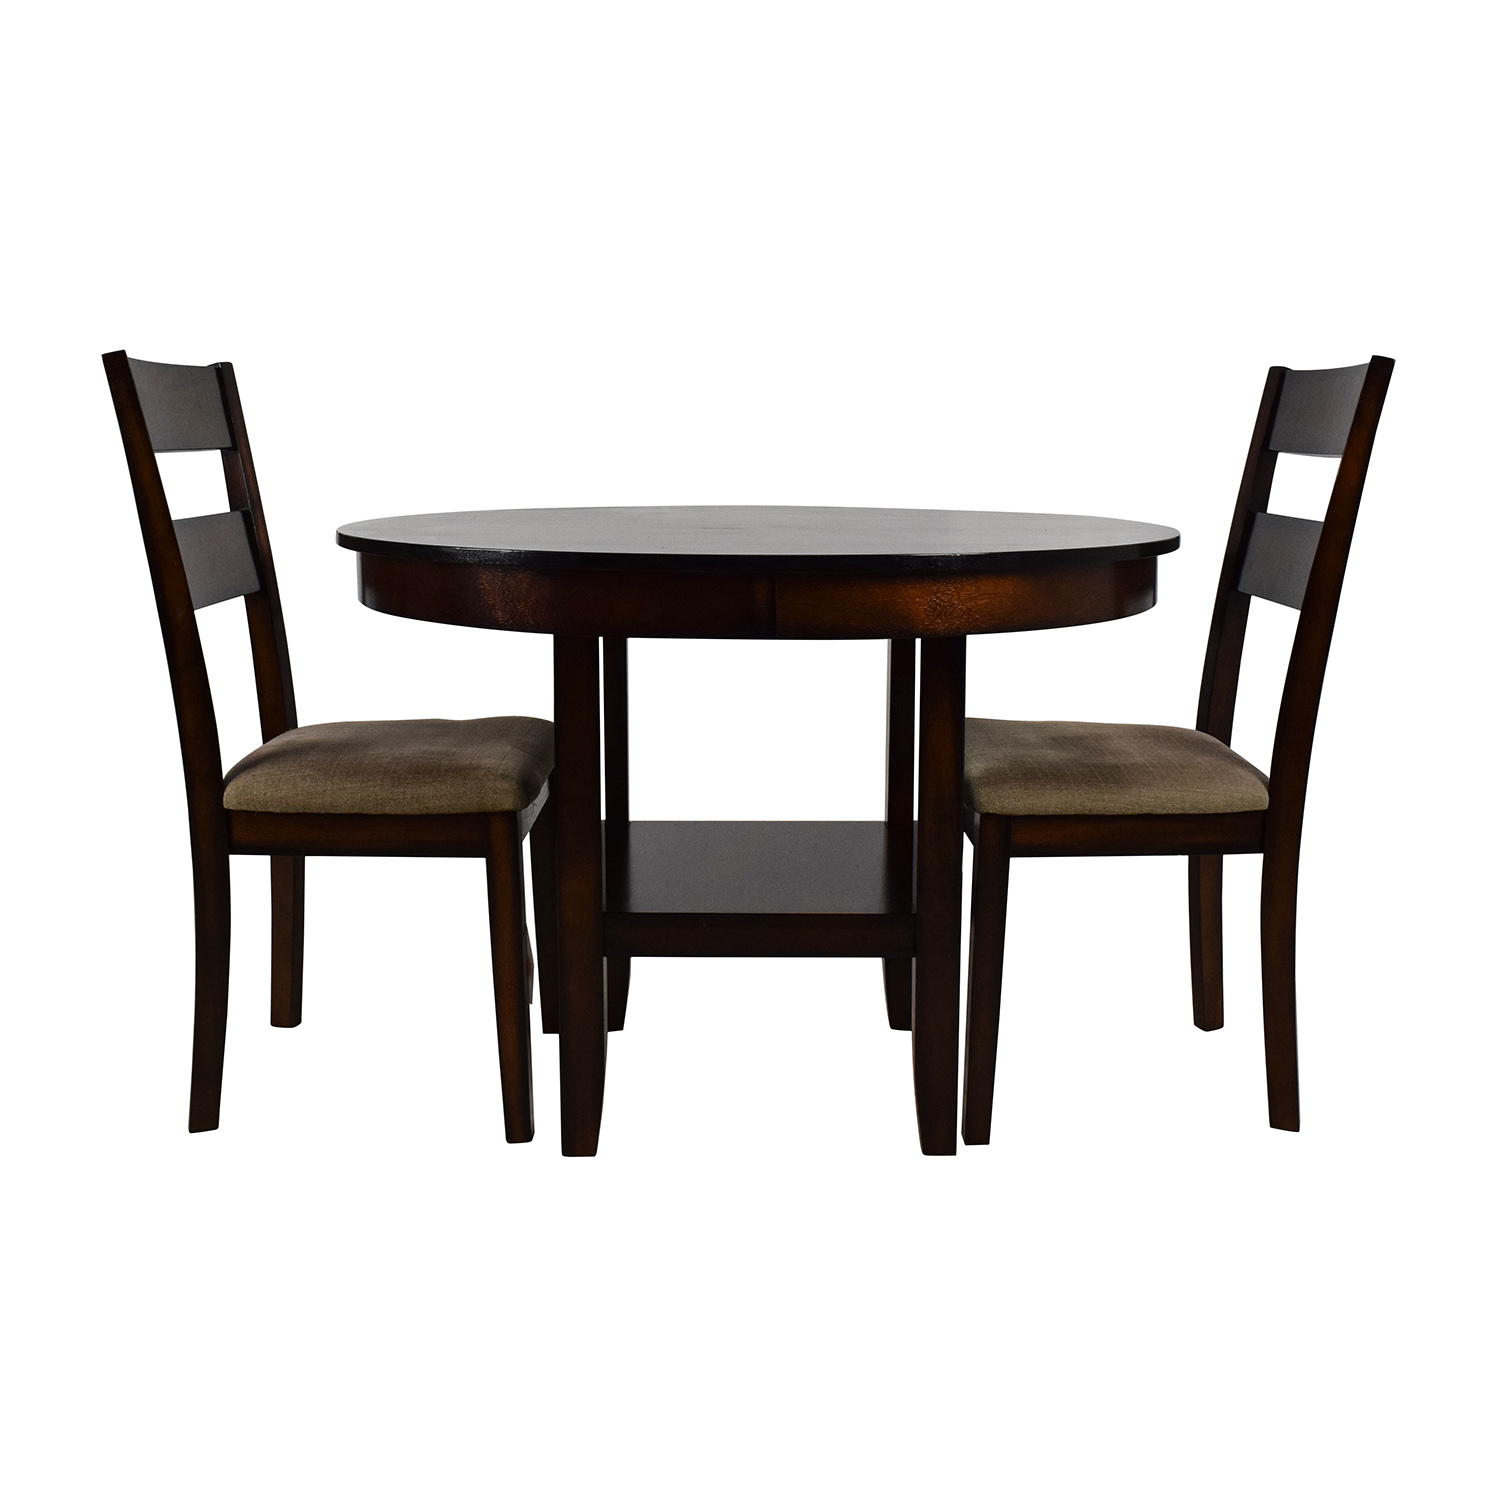 Macys Branton 3-Piece Dining Room Collection / Tables